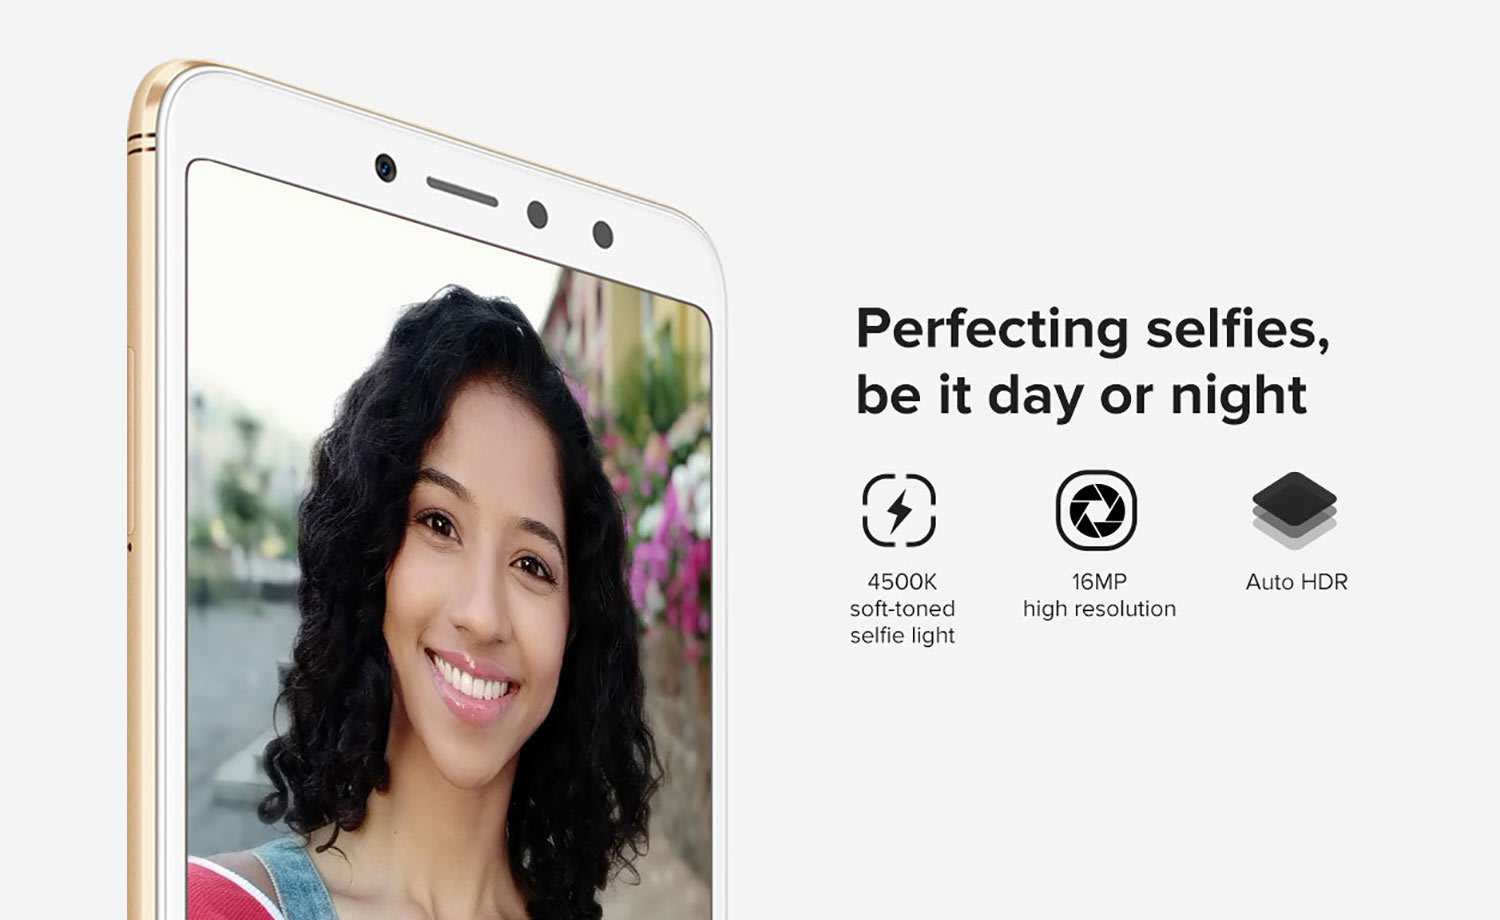 Best Selfie Smartphone Xiaomi Redmi Y2 Price, Specs, Reviews